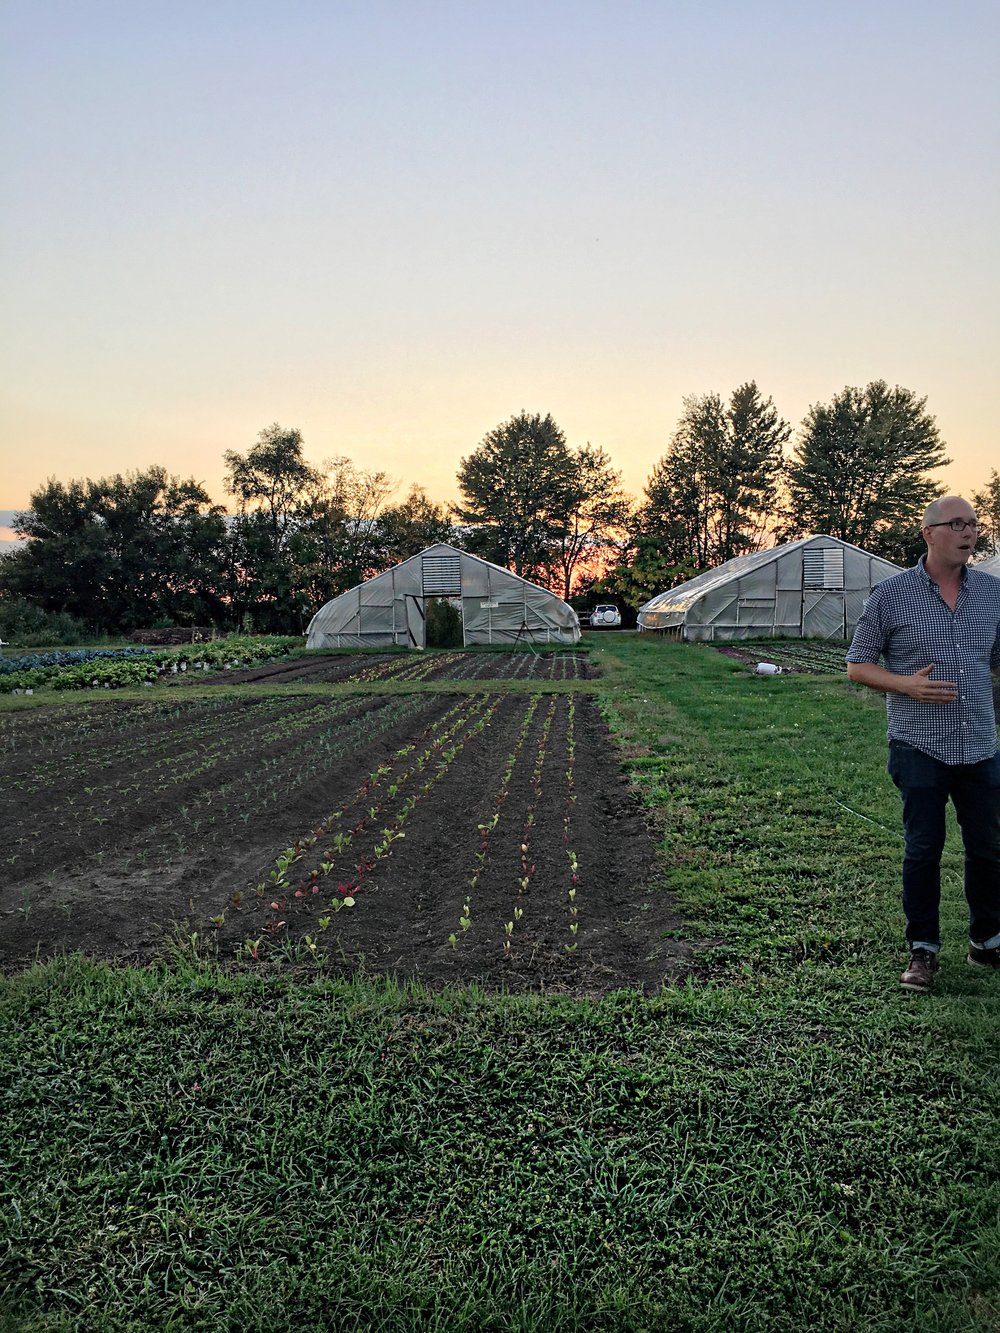 I want to keep working on collaborations that offer me the opportunity to visit farms so that I can keep gaining knowledge on where my food comes from